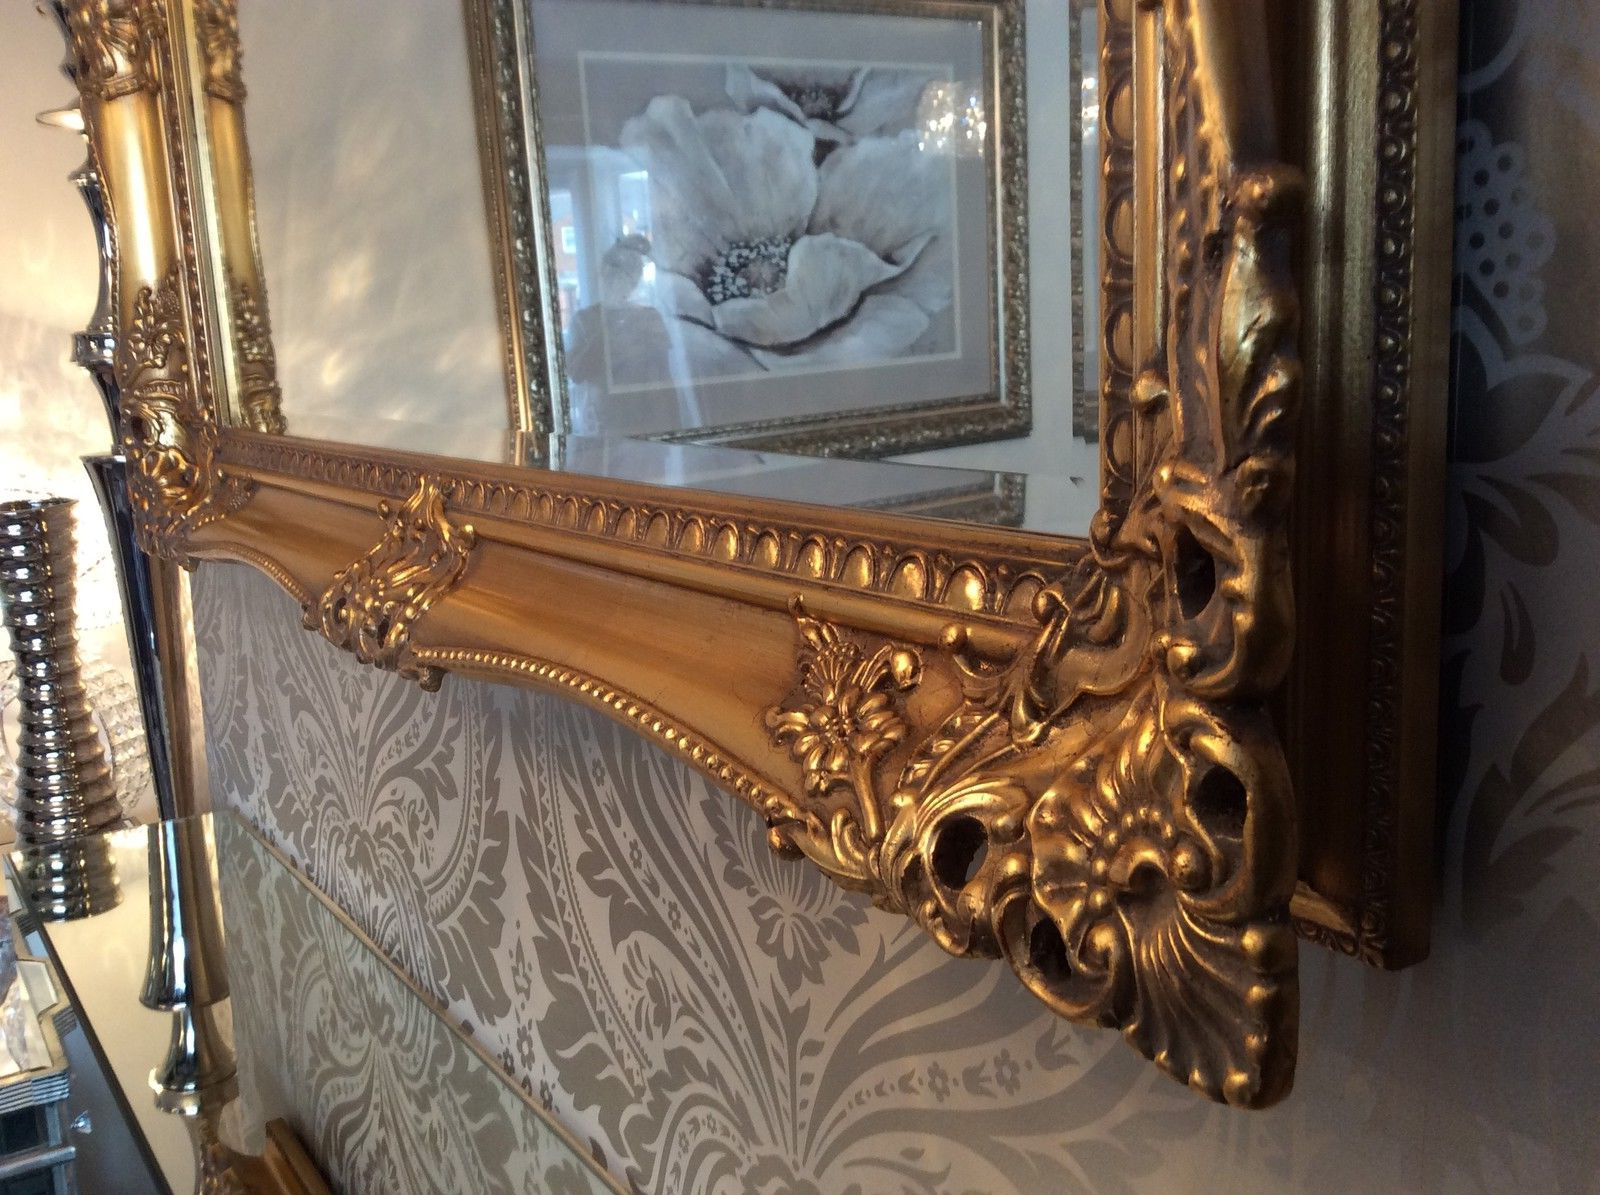 X Large Antique Gold Shabby Chic Ornate Decorative Wall Mirror Free Postage Pertaining To Well Known Large Antique Wall Mirrors (View 5 of 20)